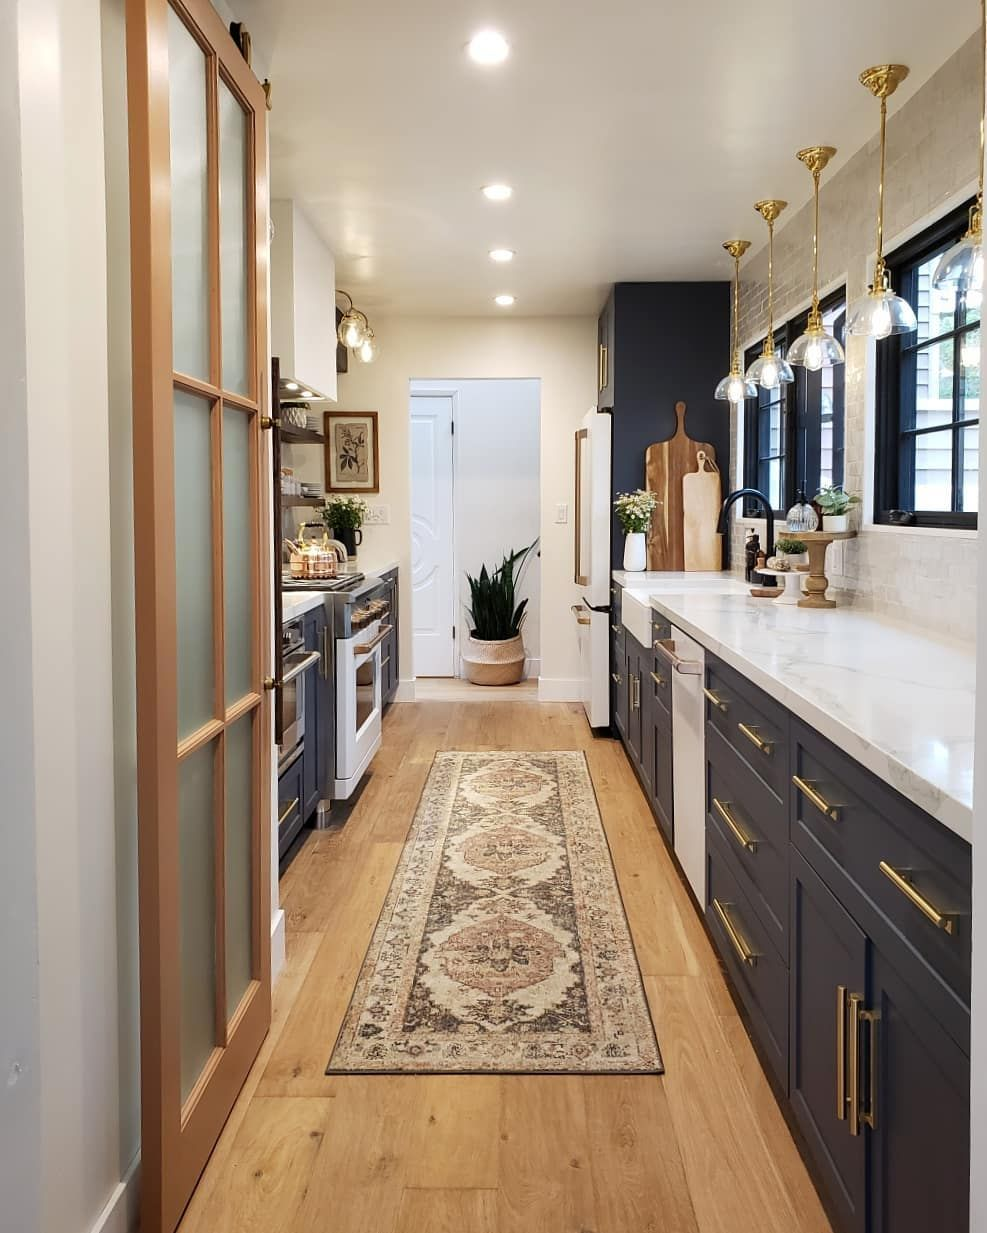 11 Beautiful Galley Kitchen Design Ideas Galley kitchen